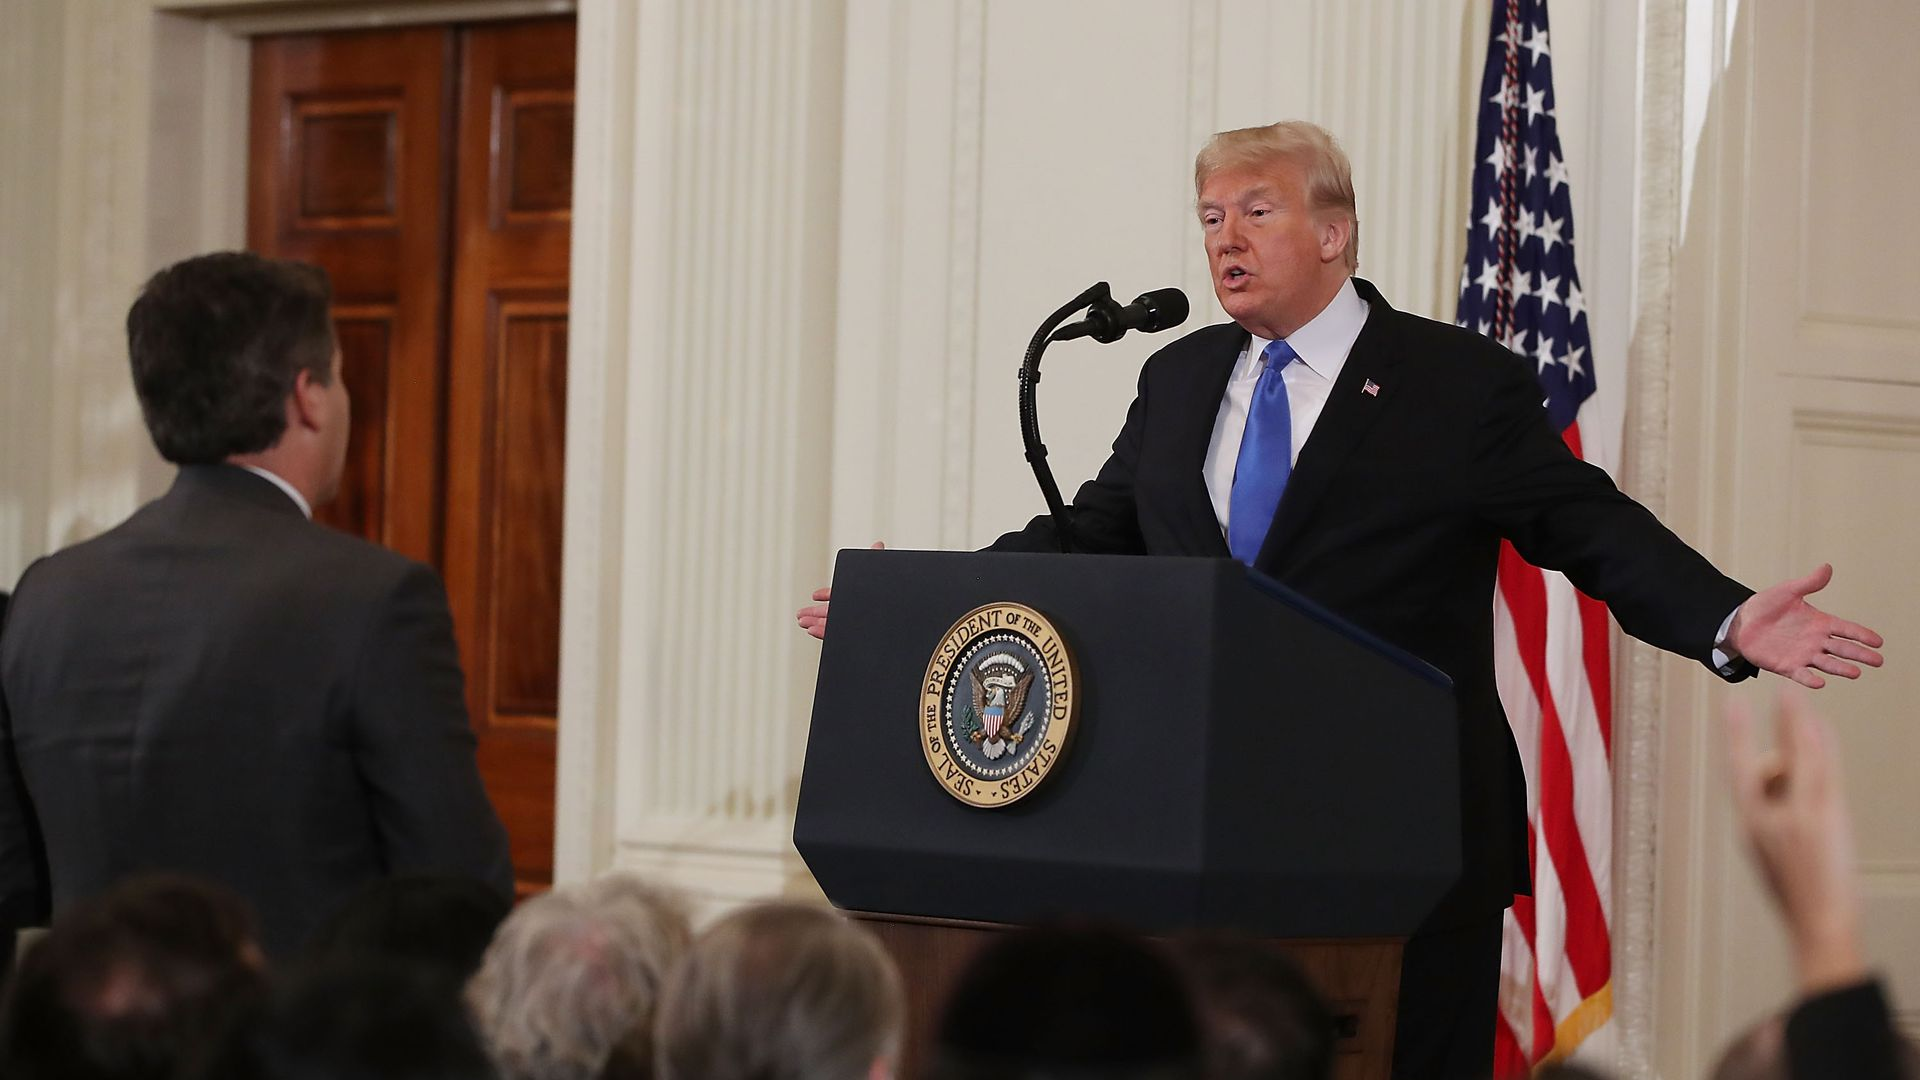 President Trump spars with CNN's Jim Acosta during a press conference last week